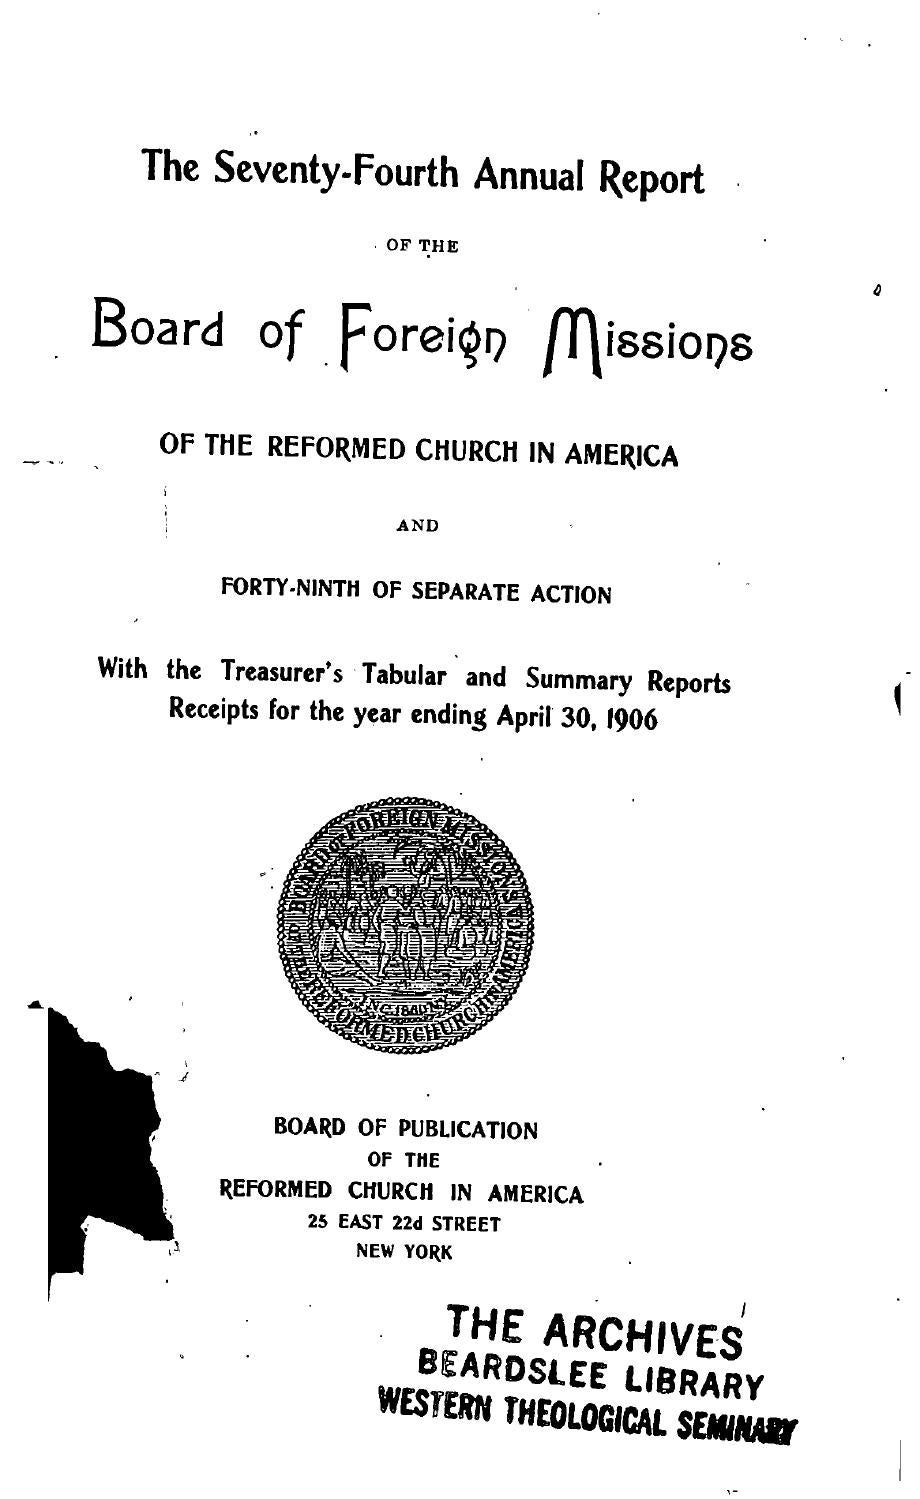 074 board of foreign missions rca 1906 by Hope College Library - issuu